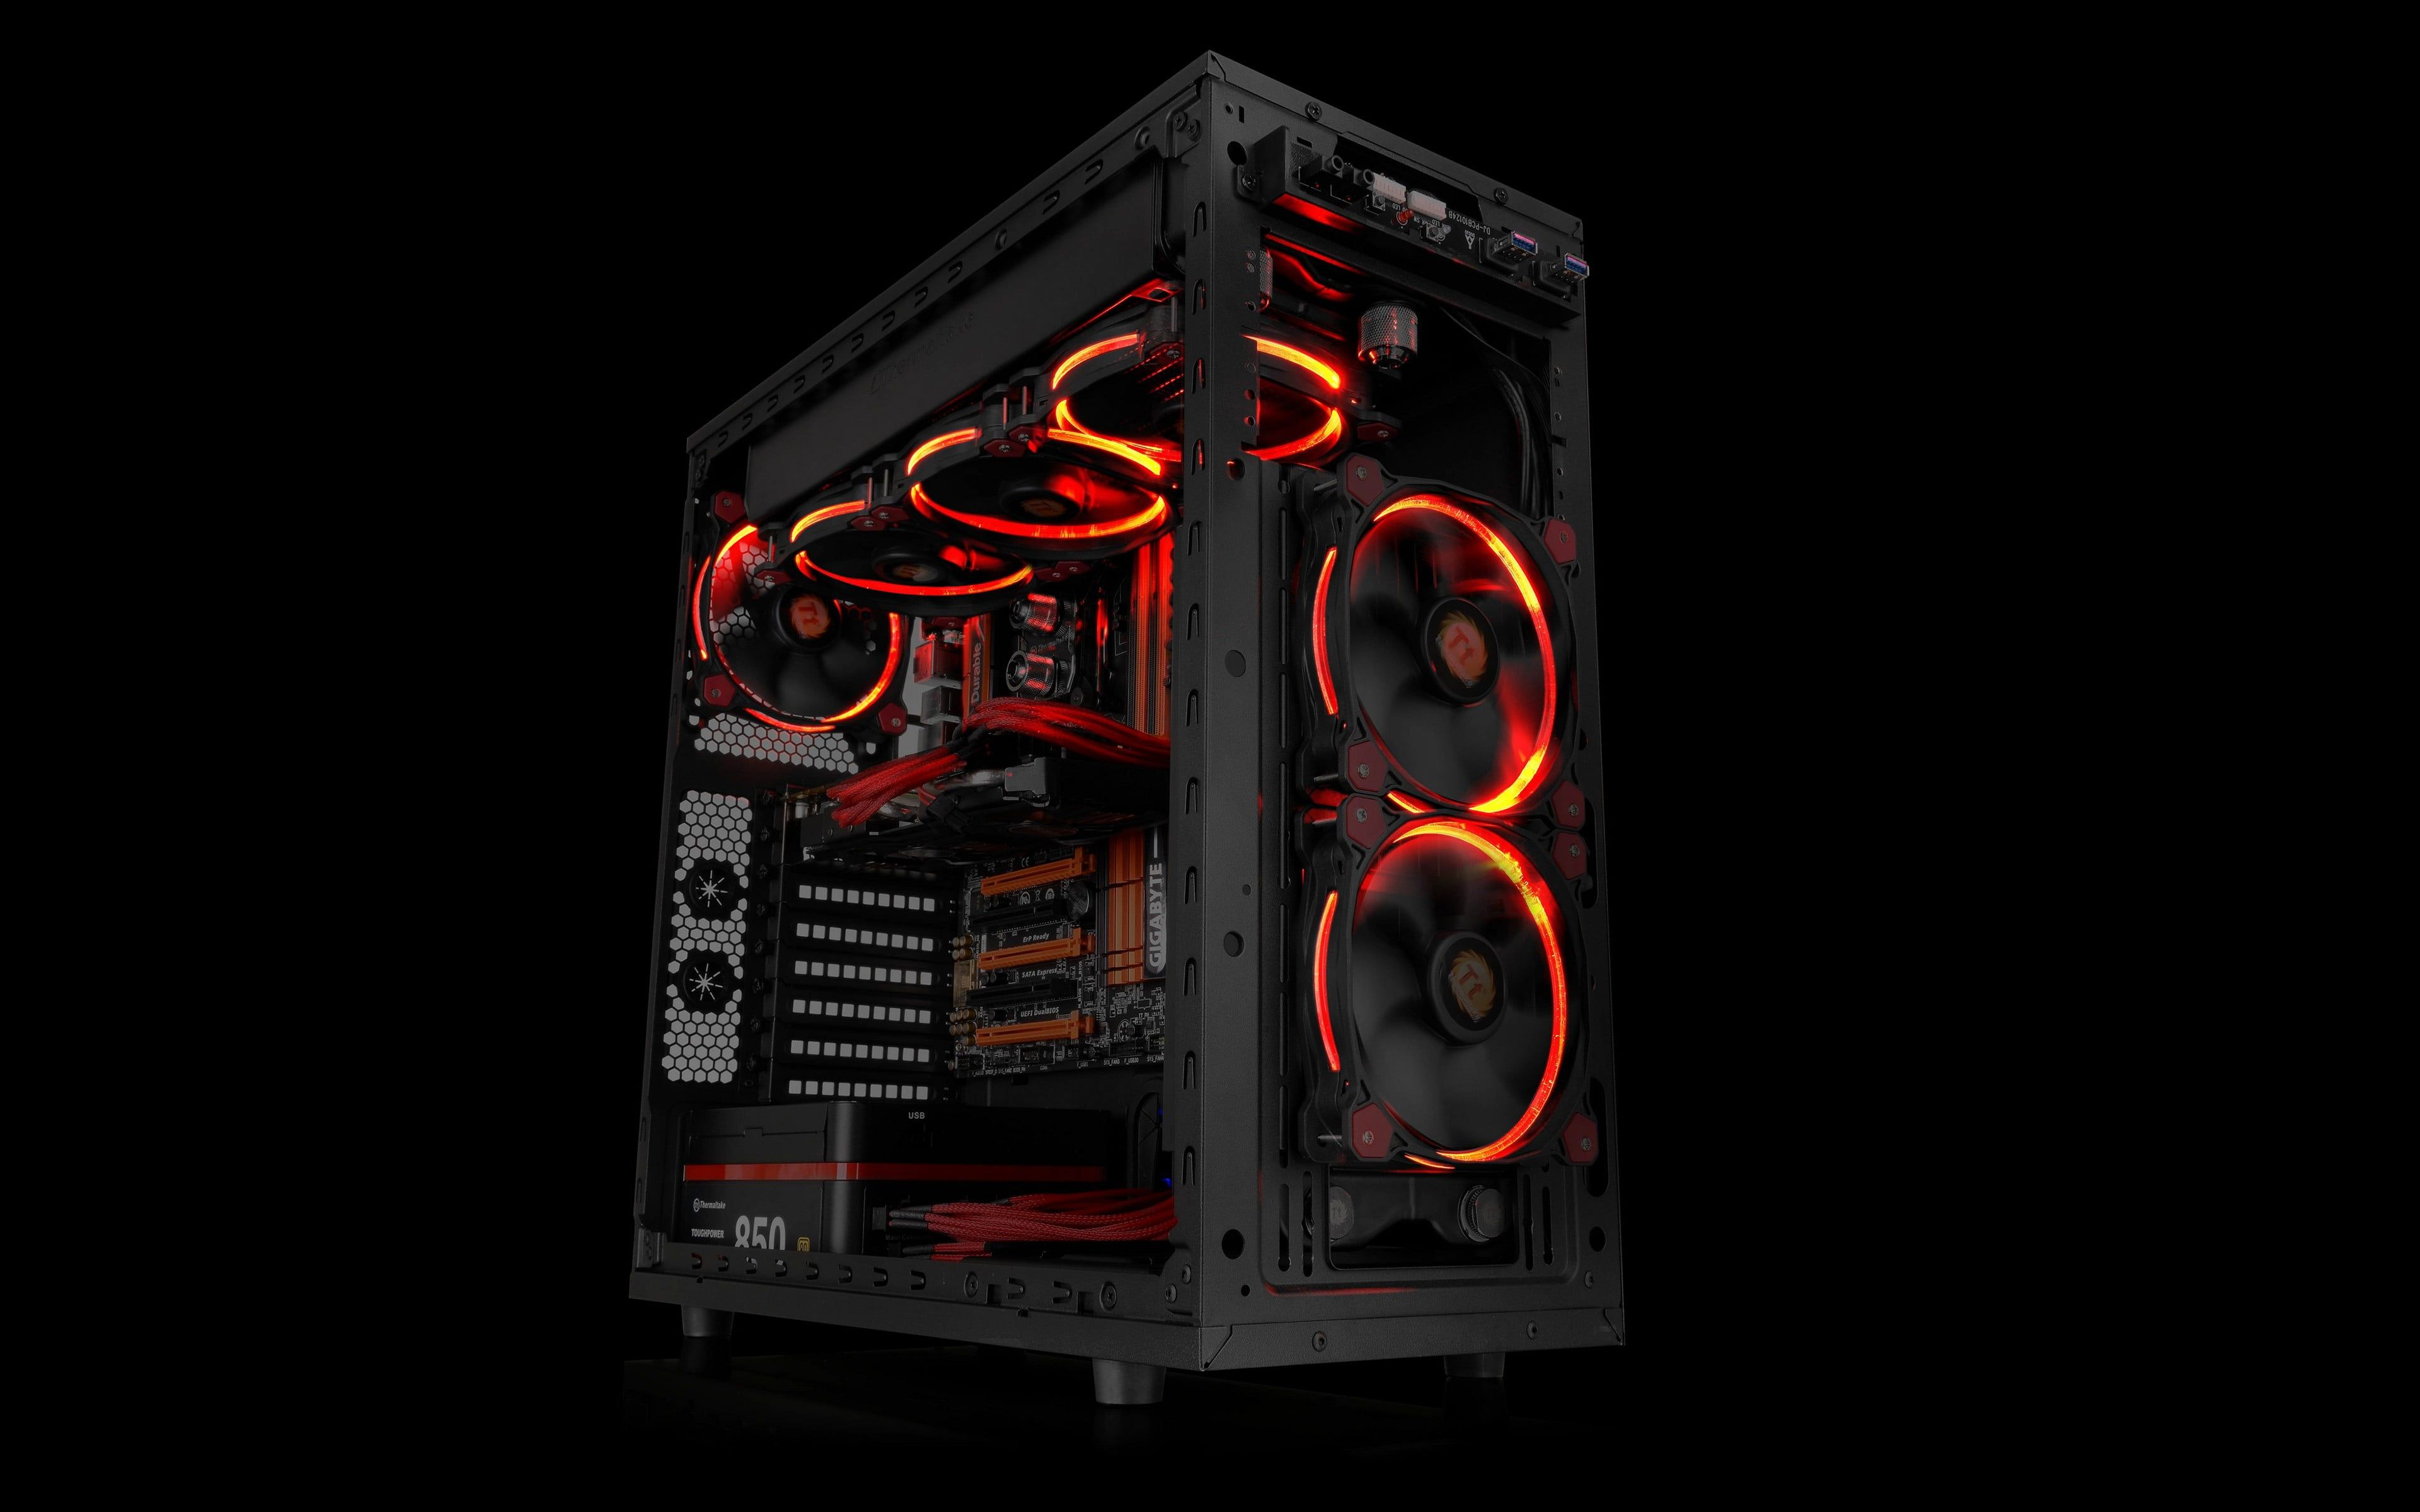 Black Computer Tower Pc Gaming Computer Pc Cases Technology Gigabyte Hardware Simple Background 4k Wallpaper Hdwallpap In 2020 Pc Cases Computer Tower Gaming Pc